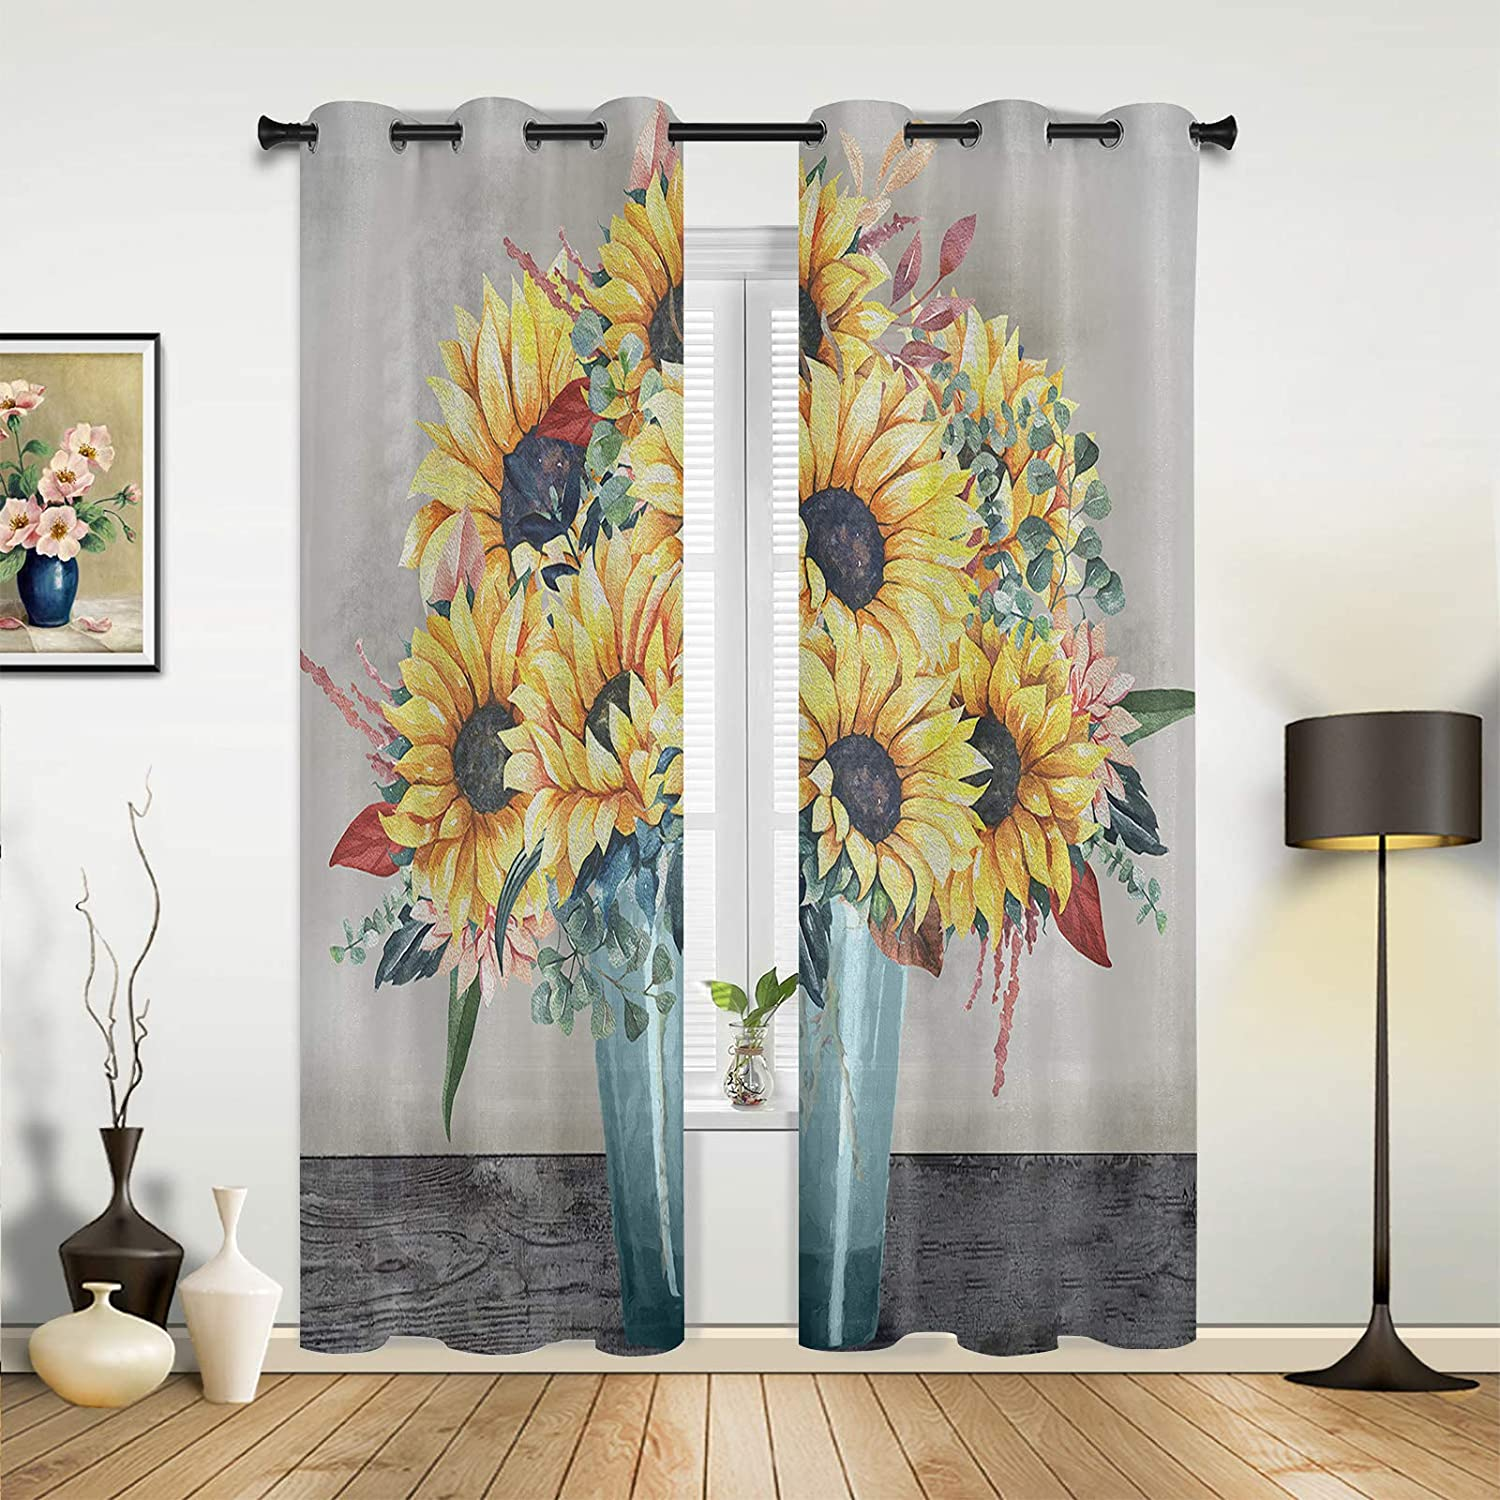 Window Max 81% OFF Curtains Drapes Panels Oil Dreamlike National products Painting Sun Texture